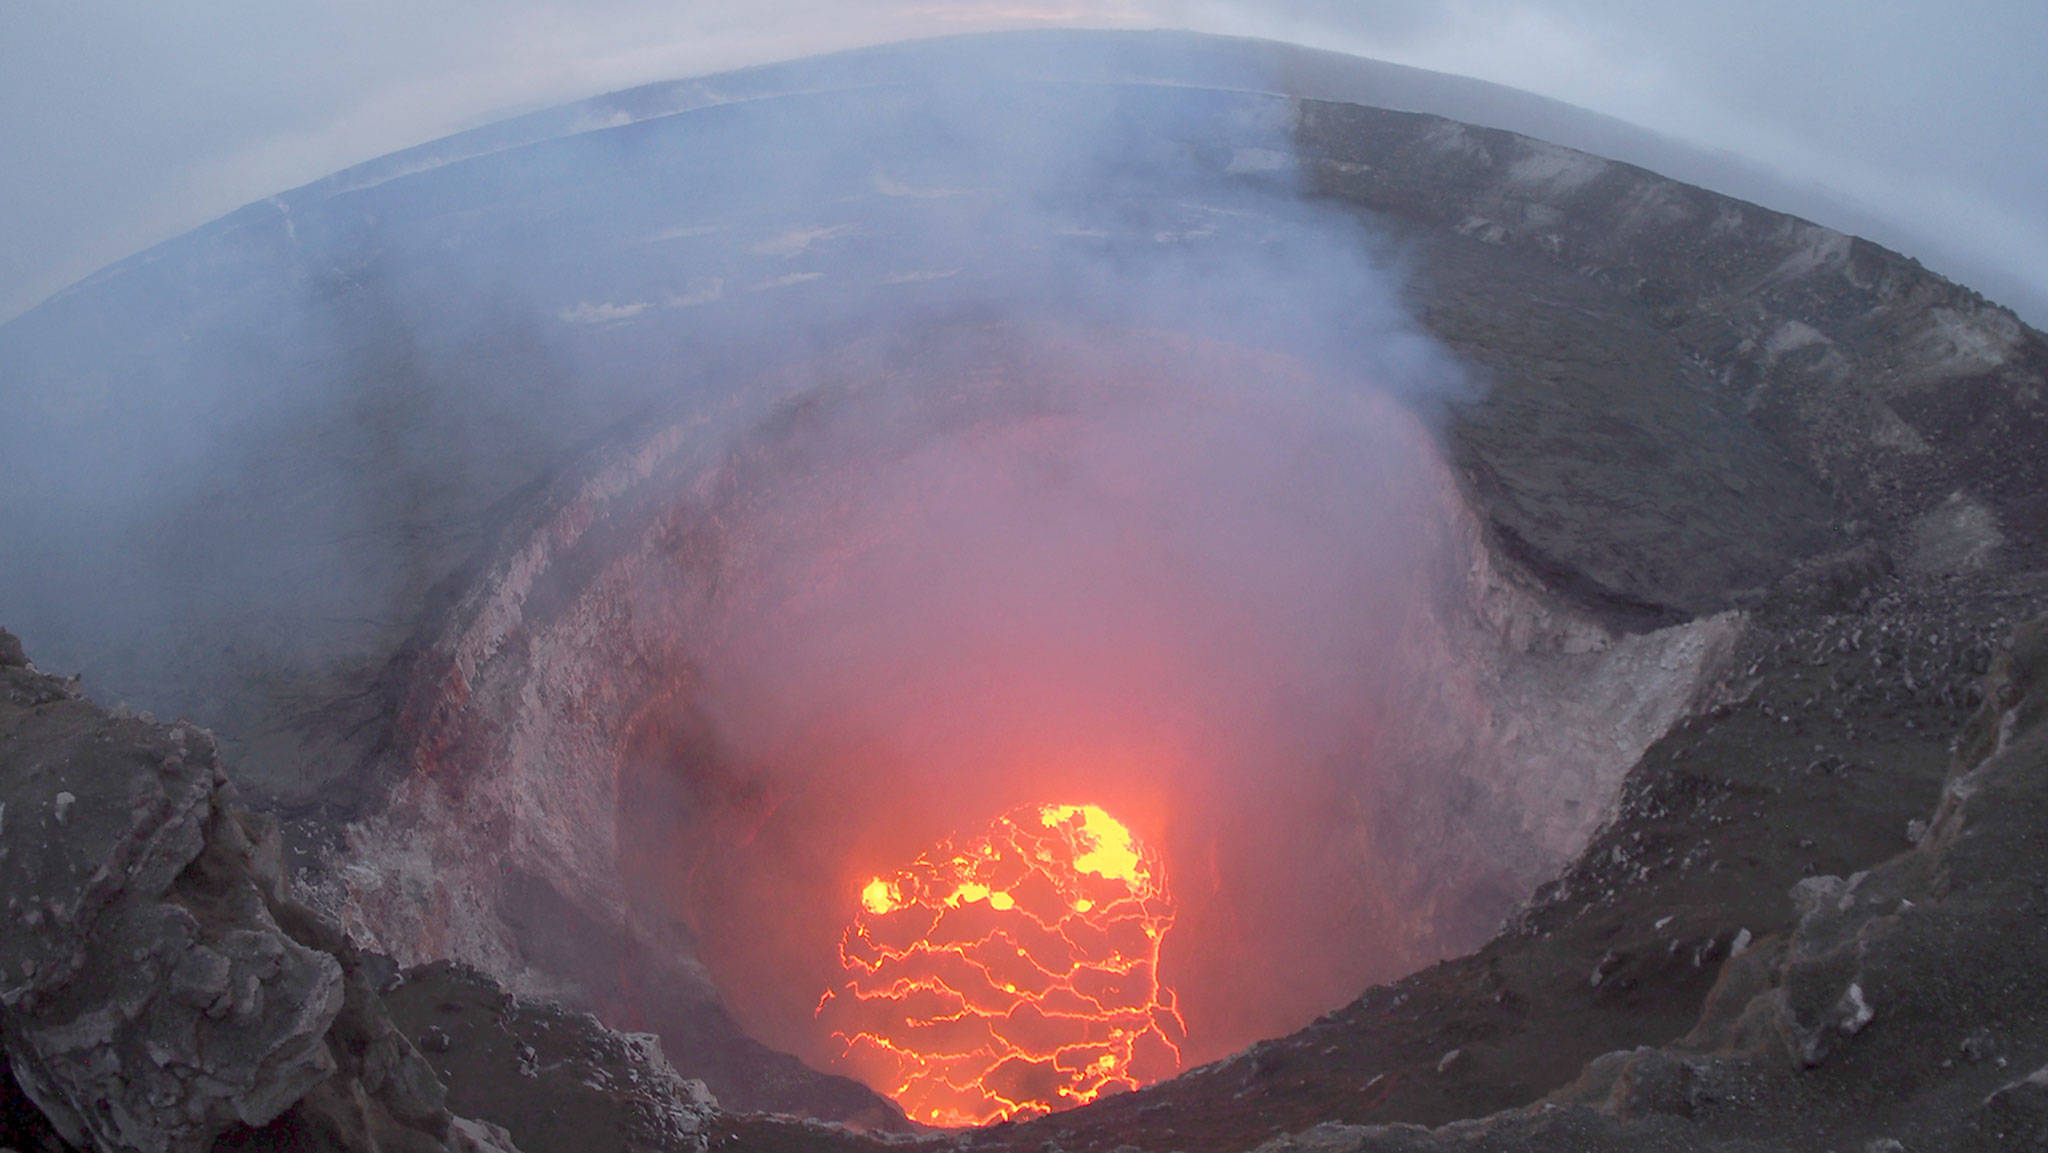 kilauea volcano diagram labelled of water cycle slopes offer lush affordable piece paradise